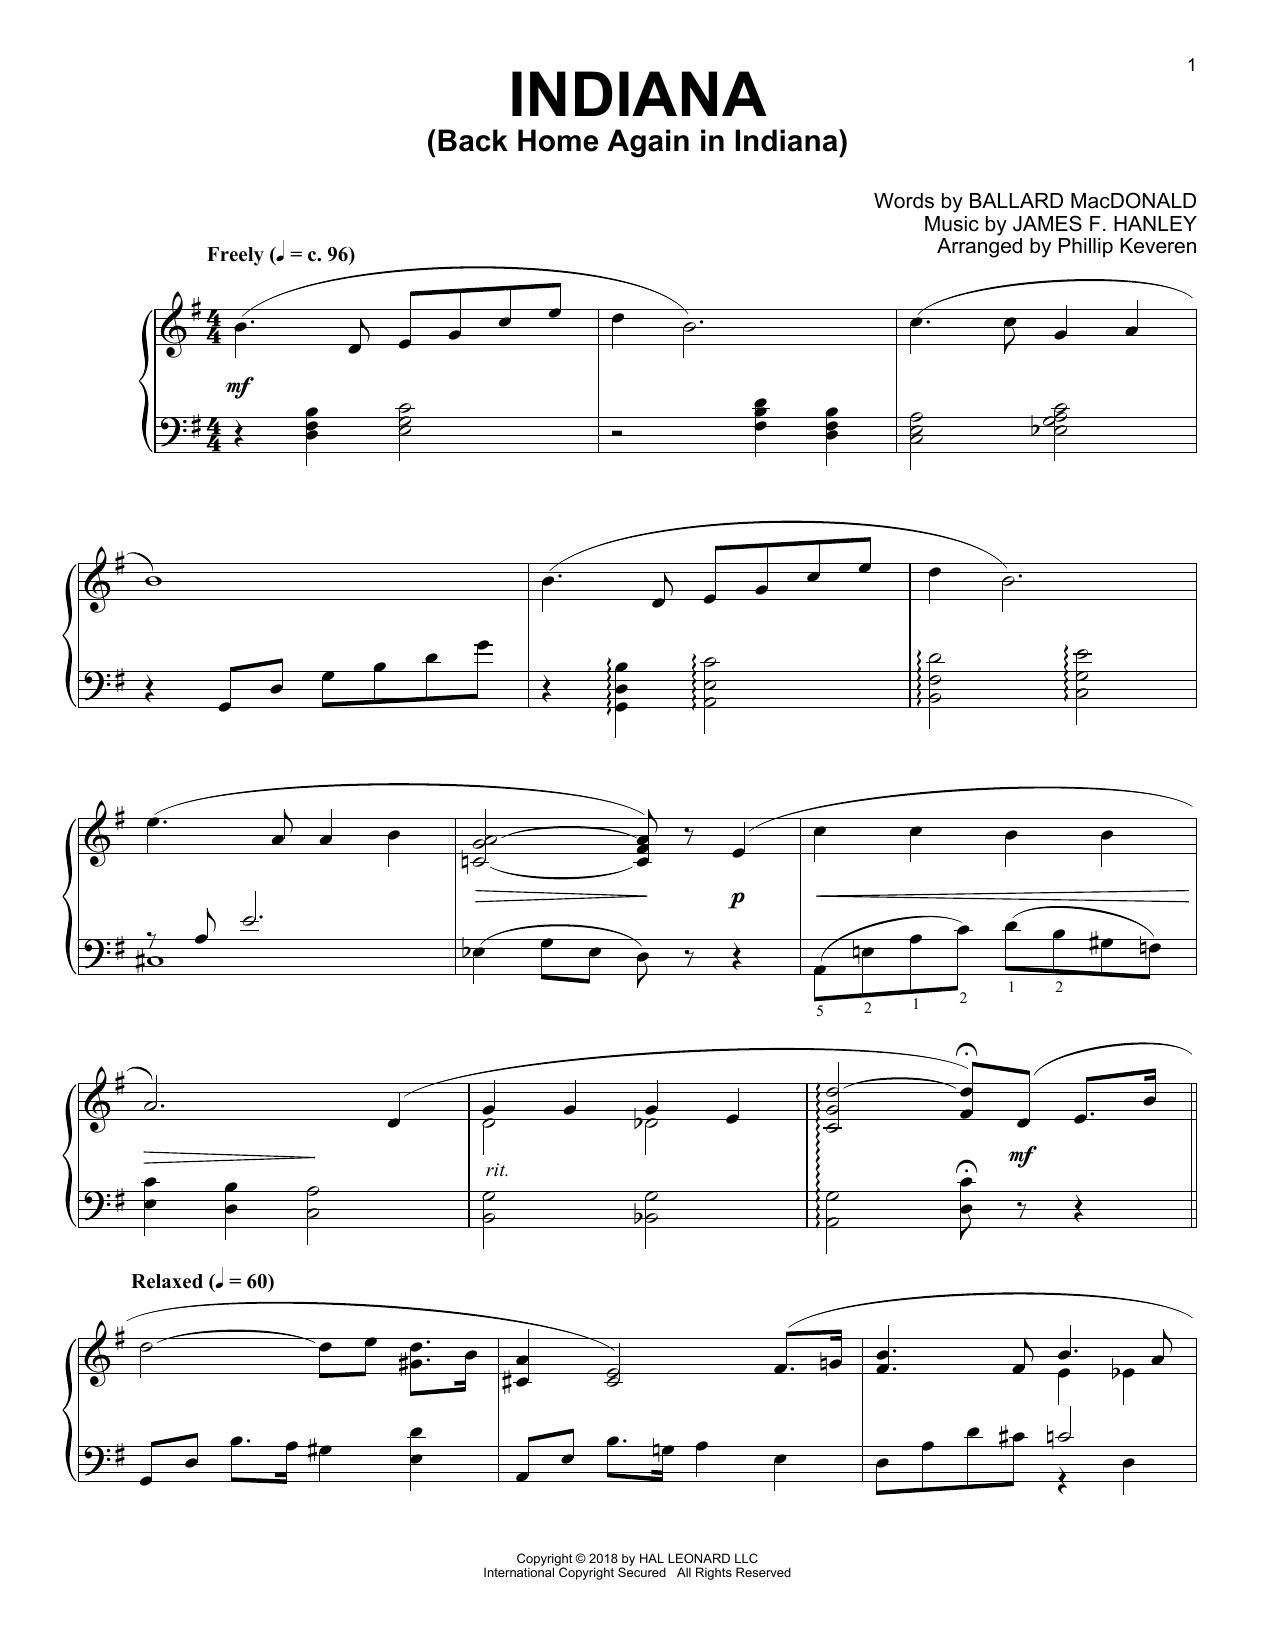 Download James F. Hanley 'Indiana (Back Home Again In Indiana) (arr. Phillip Keveren)' Digital Sheet Music Notes & Chords and start playing in minutes